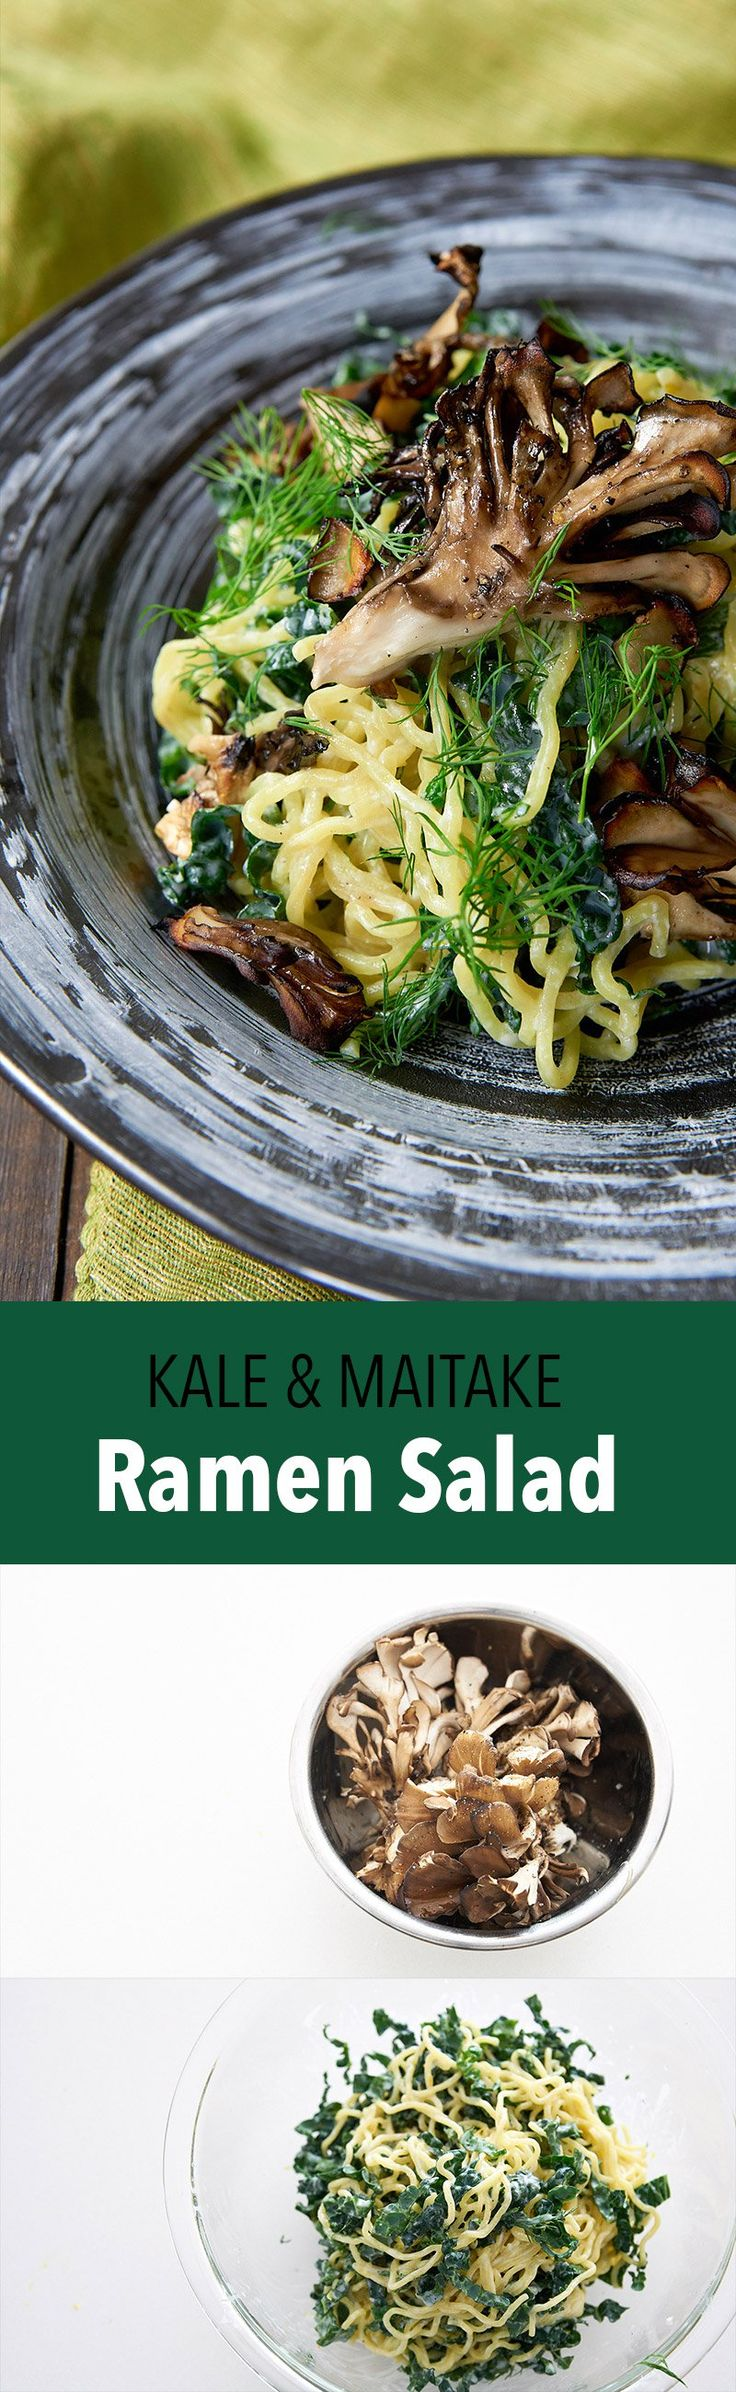 This delicious ramen salad is loaded with kale, dill, and crispy maitake mushrooms tossed with a creamy garlic lemon and yogurt dressing.